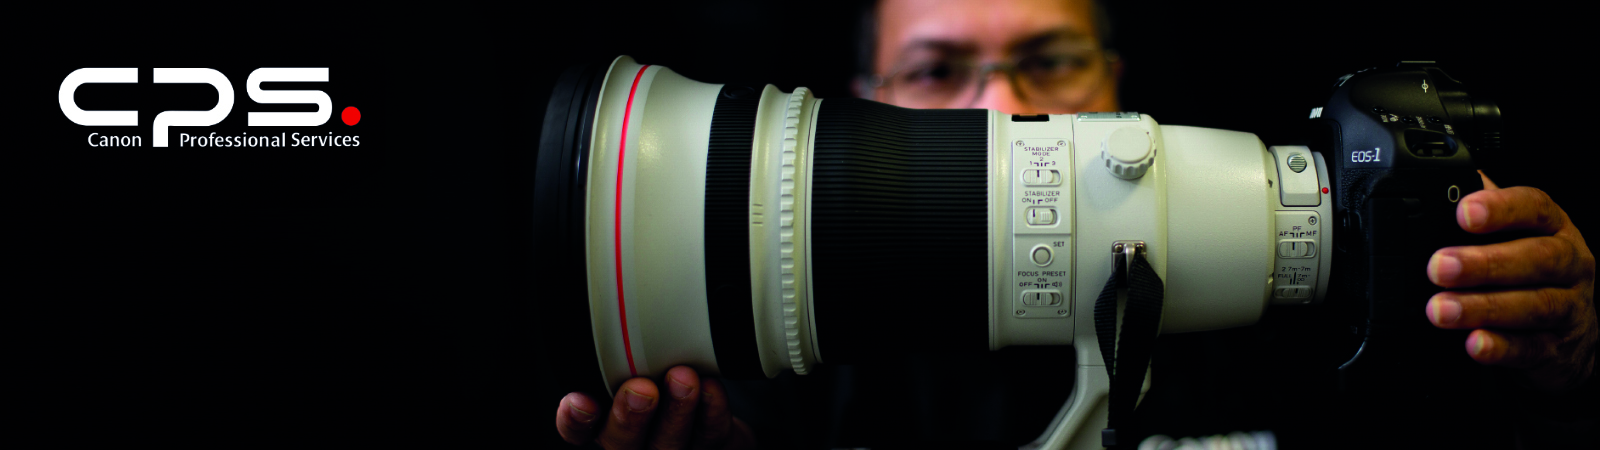 Canon Professional Services (CPS)